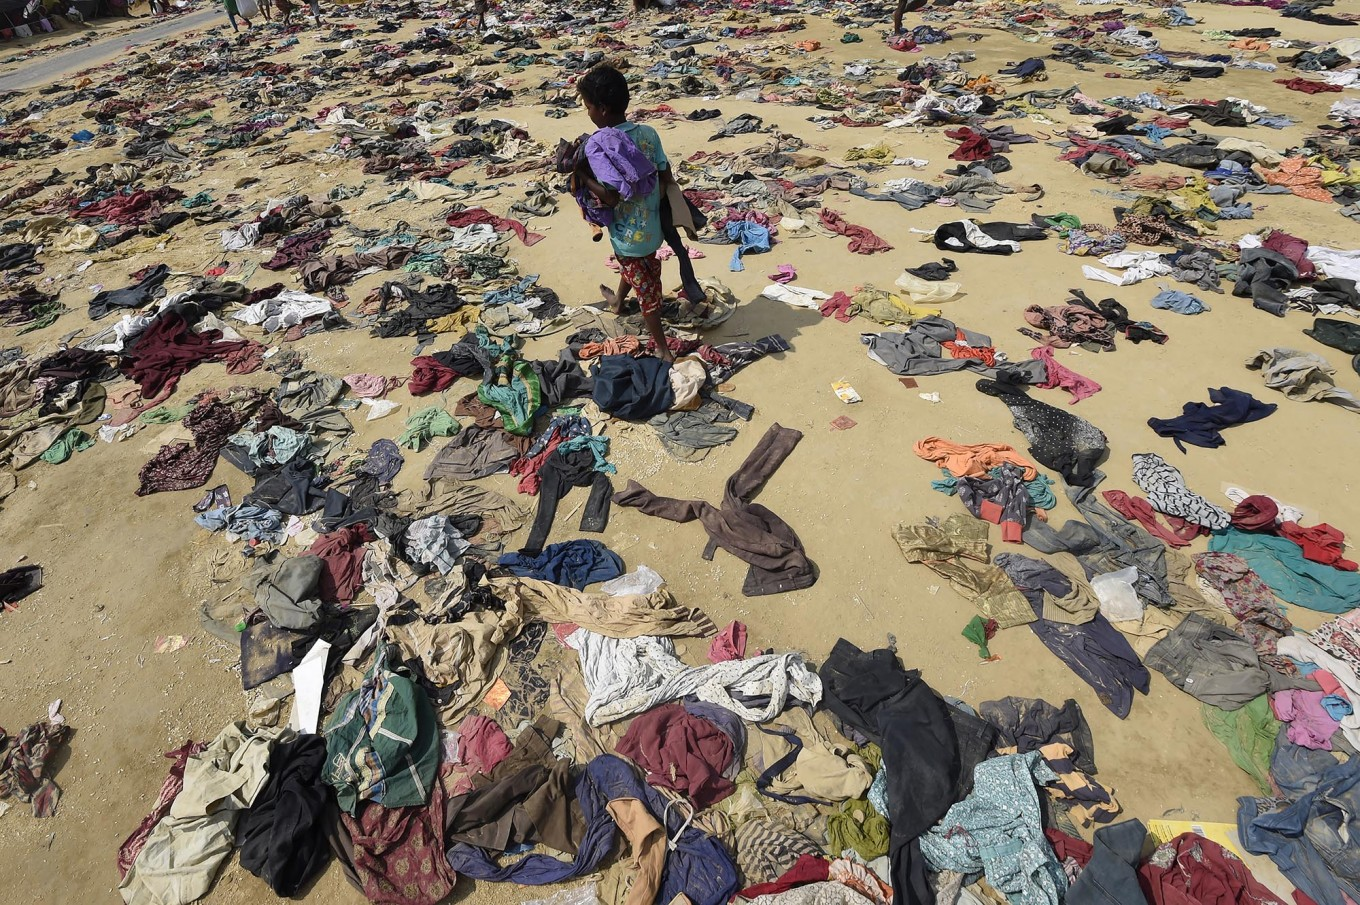 A Rohingya Muslim boy walks past discarded clothing on the ground at the Bhalukali refugee camp near Ukhia on September 16, 2017. According to the UN nearly 400,000 Rohingya have arrived in Bangladesh since August 25 after fleeing a military crackdown launched by Myanmar's military in response to attacks by Rohingya rebels. AFP/ Dominique Faget